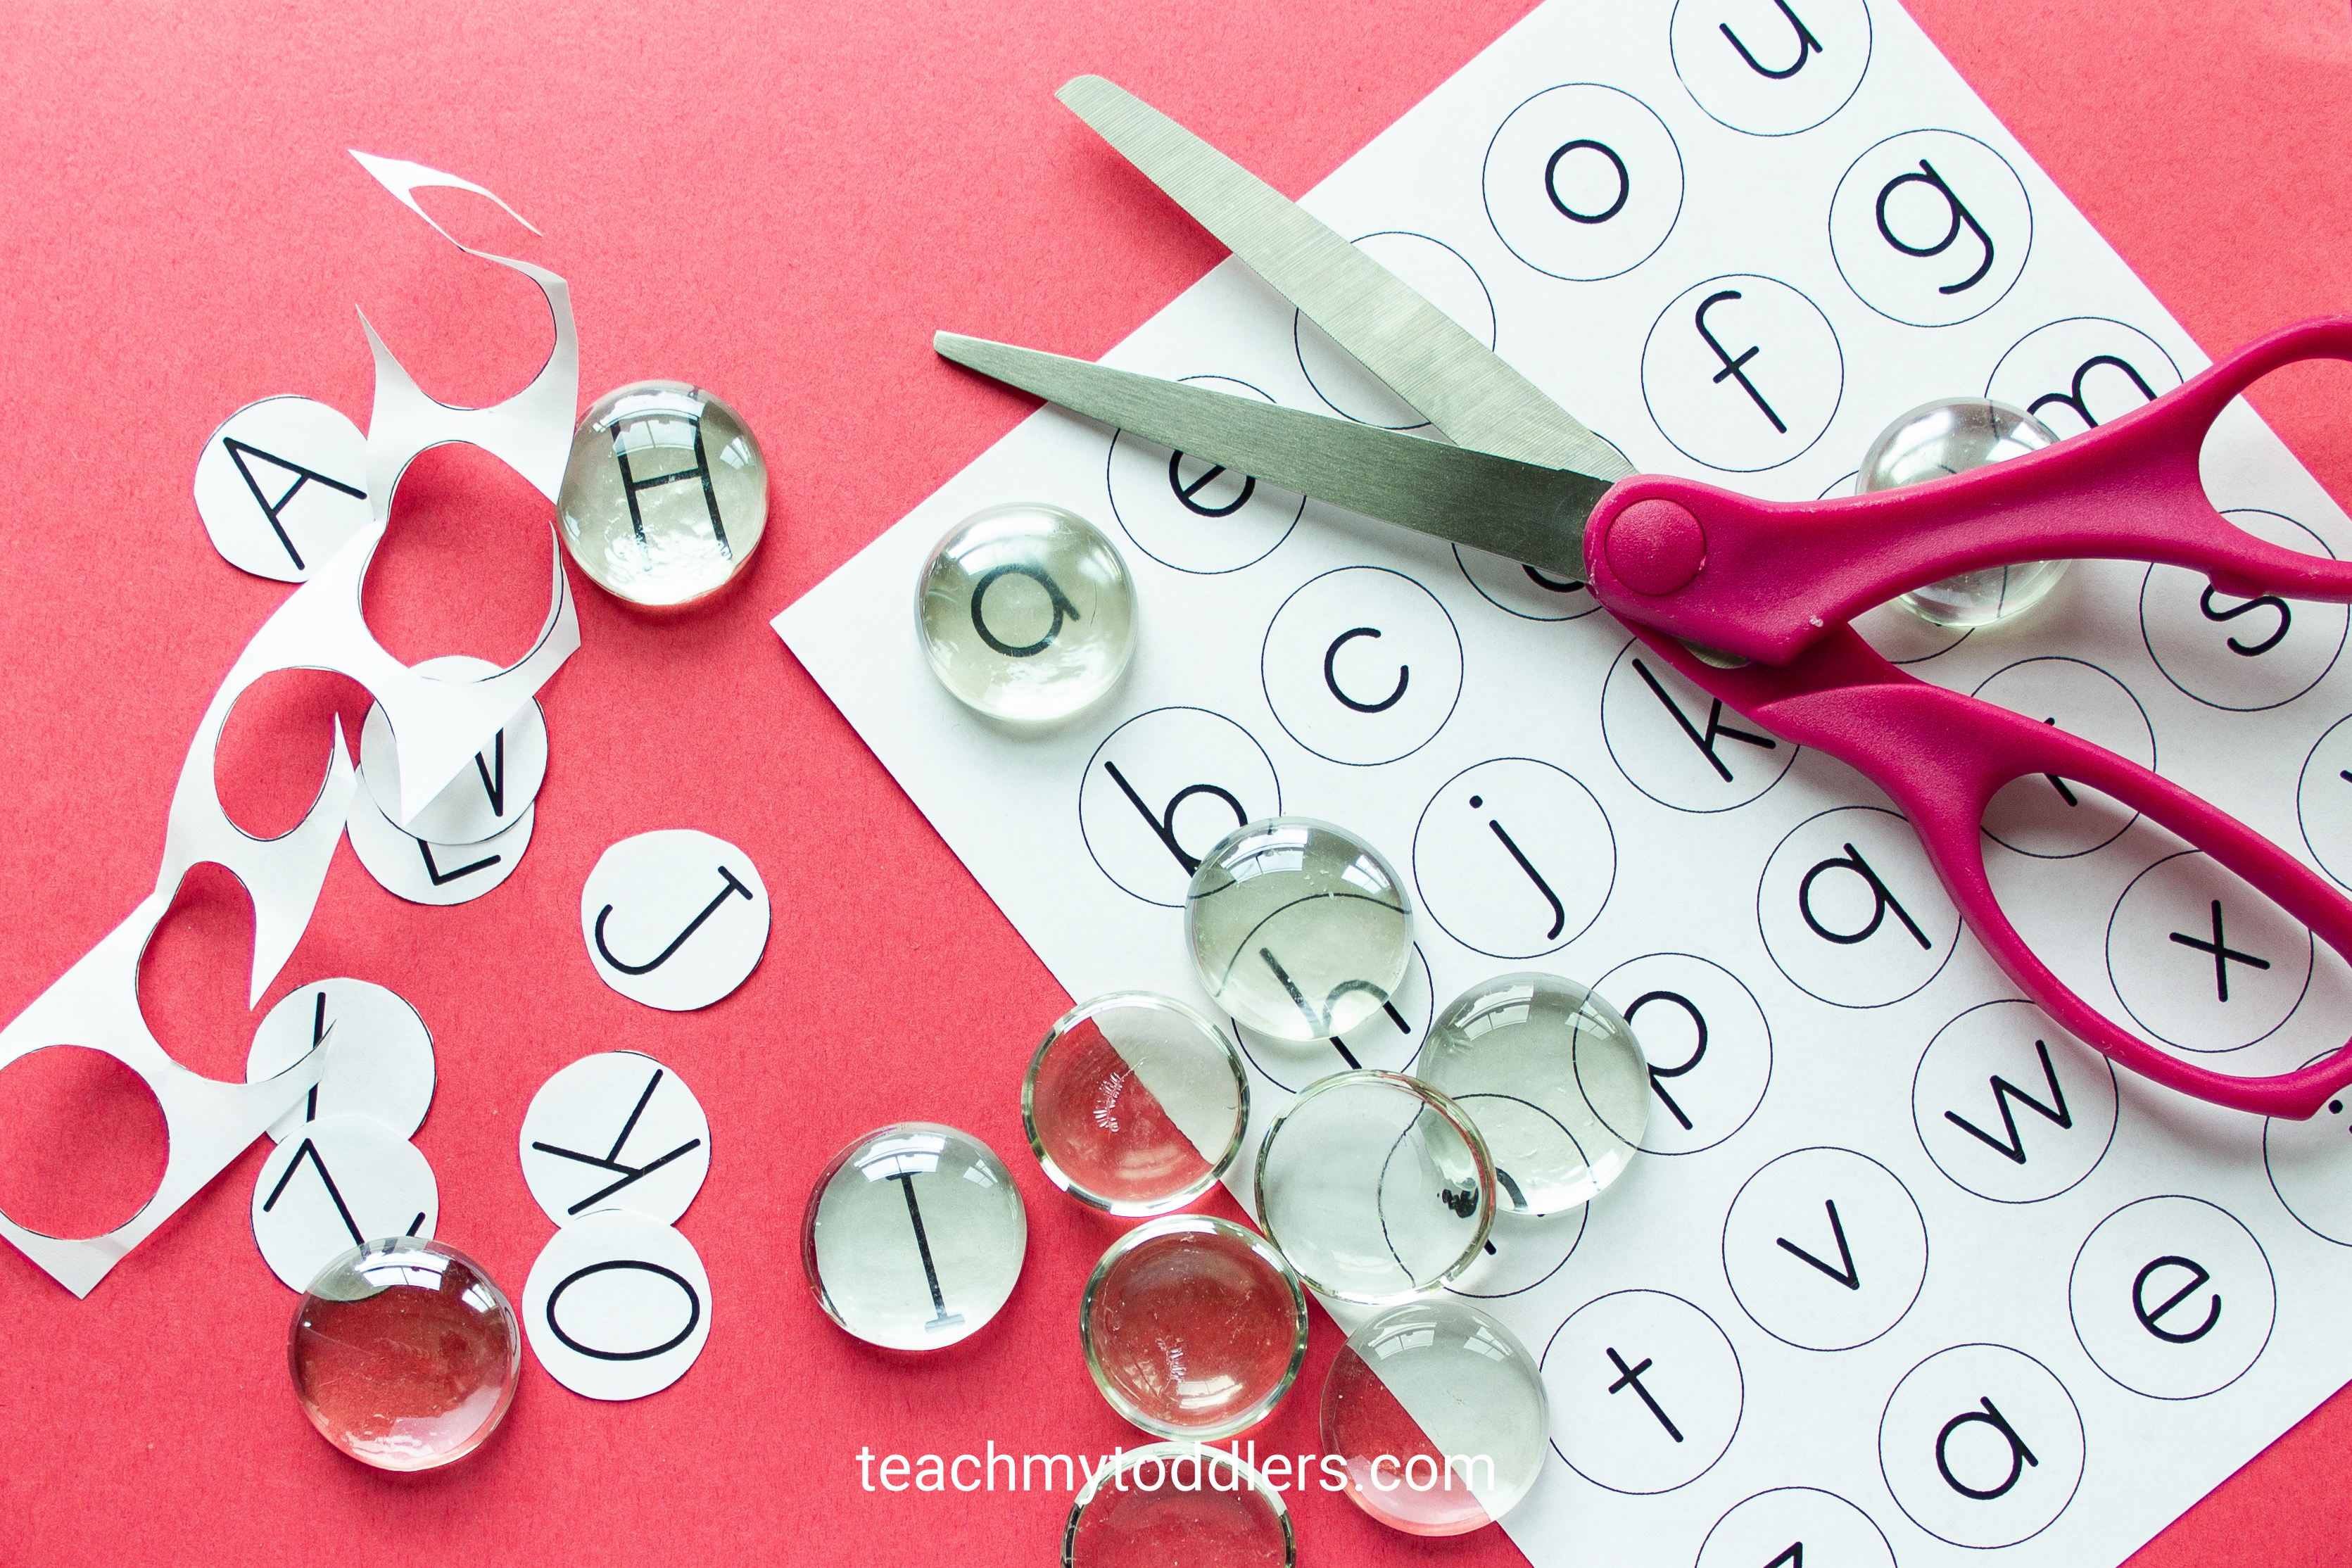 Teach your toddlers letters with this fun flat marble alphabet game